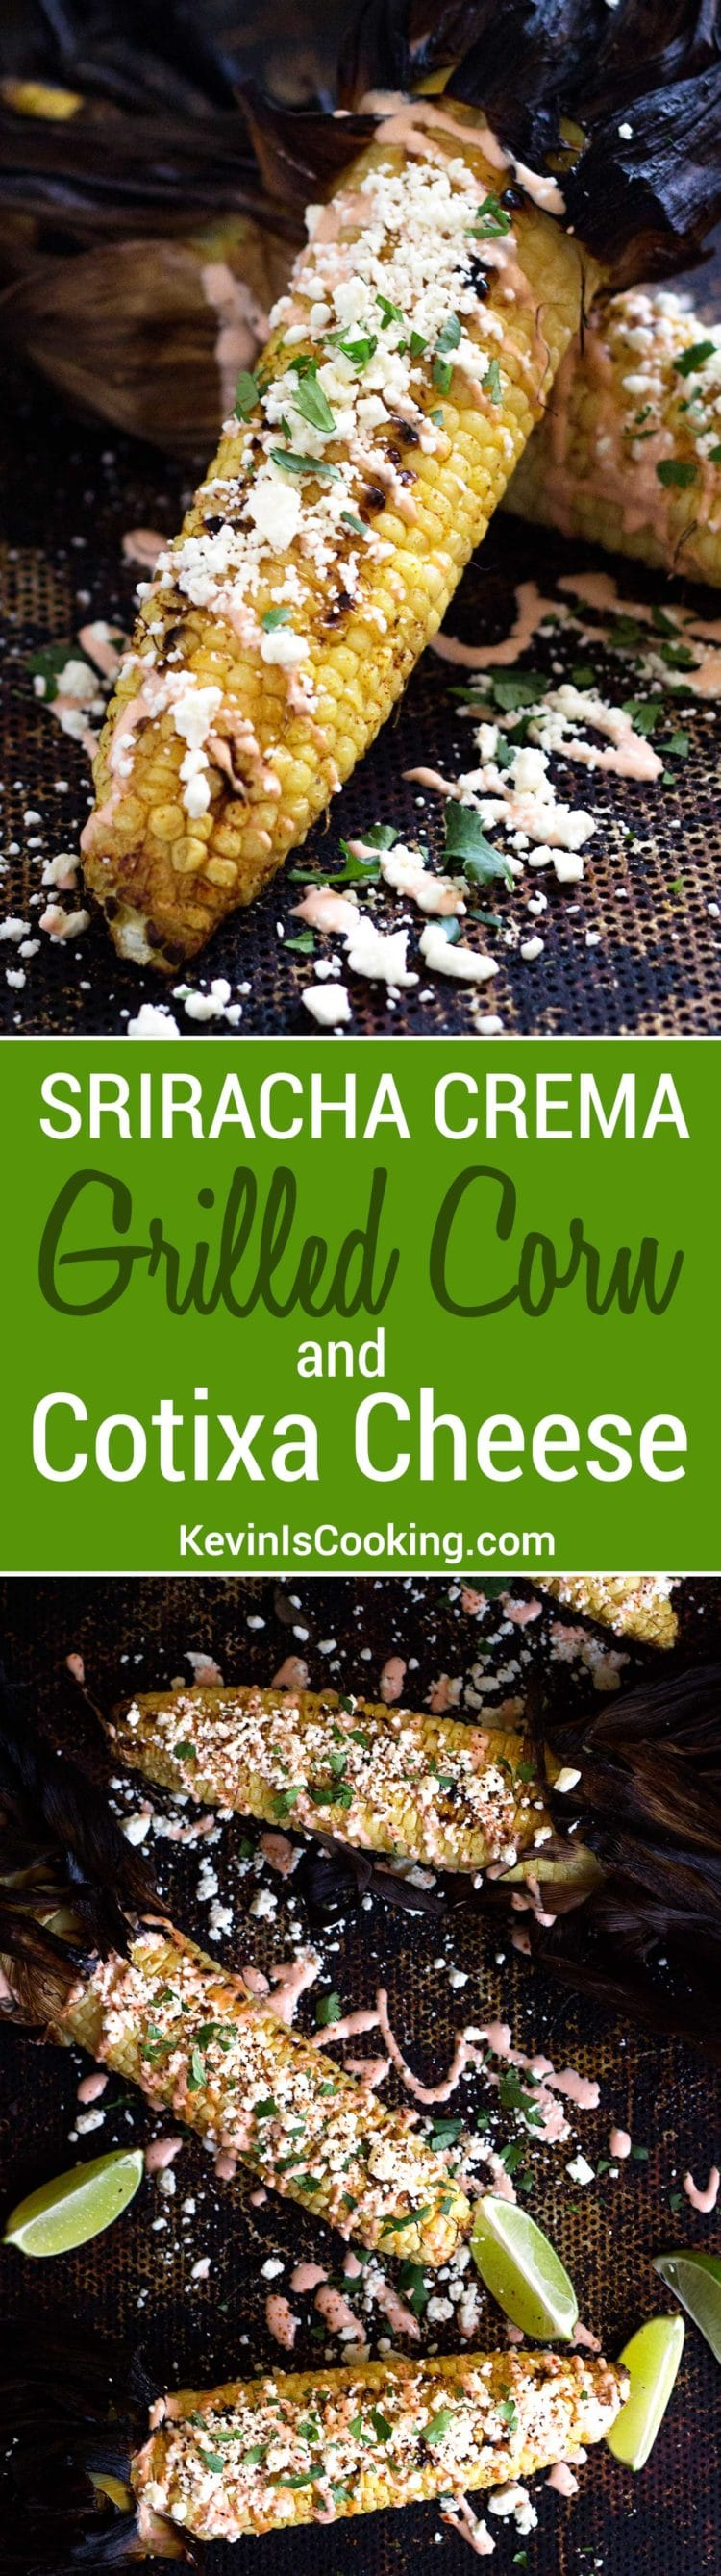 Grilled Corn with Cotija and Sriracha Crema. My family and friends go crazy when we serve this Mexican Grilled Corn for grilling BBQ parties. Hand held, spicy, and covered with cheese crumbles, this corn is the best!